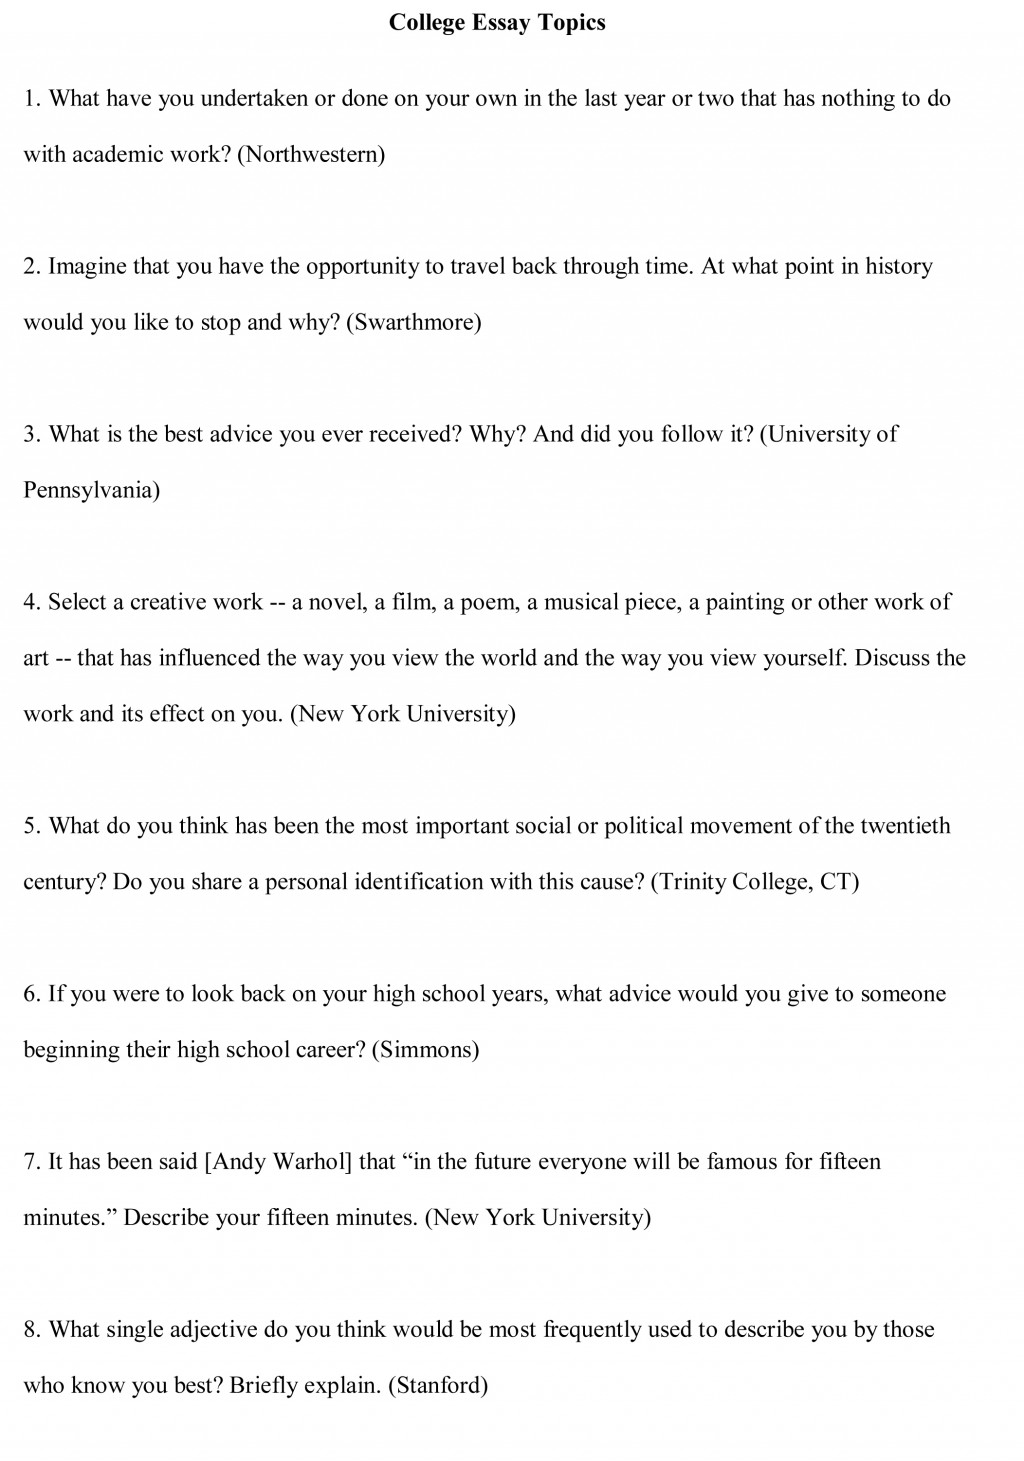 005 Essay Prompts College Topics Free Sample1 Incredible Prompt Examples Writing For 4th Grade Expository High School Large